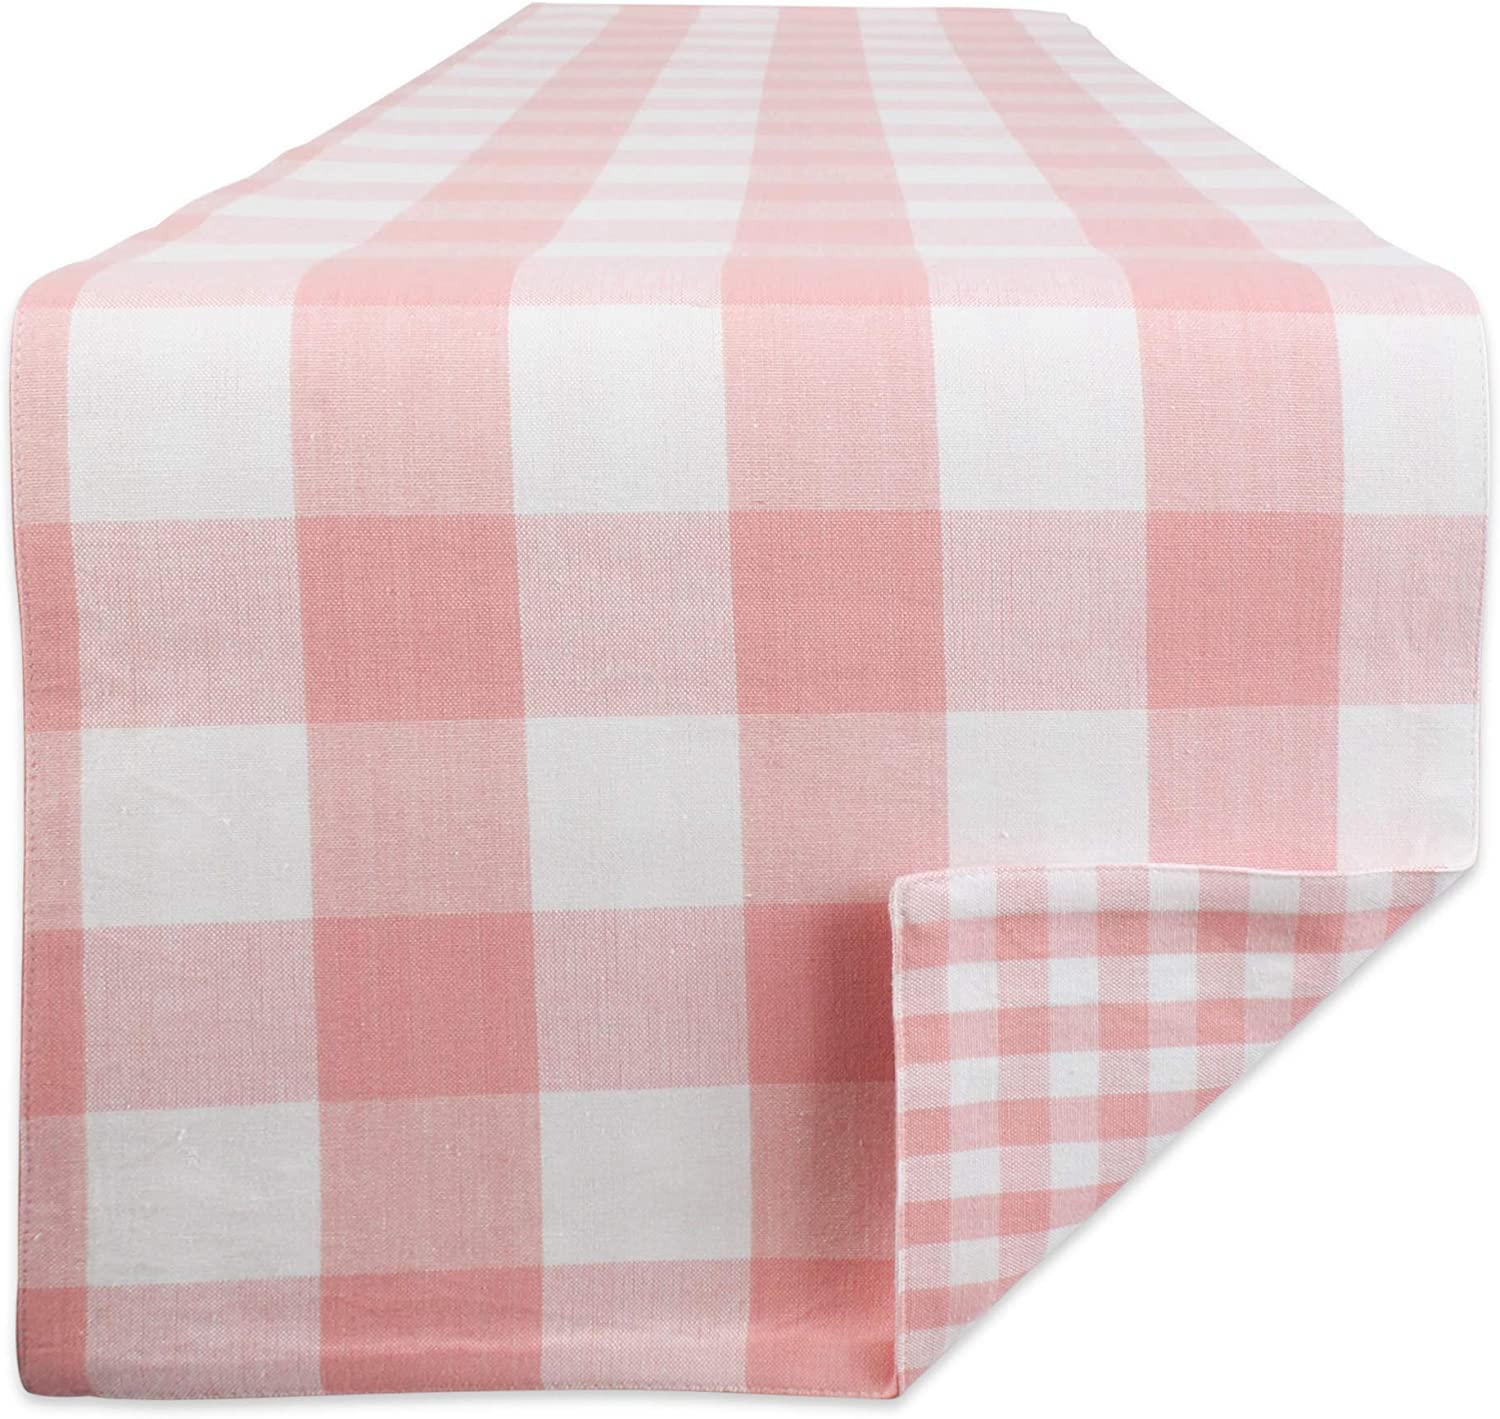 DII 100% Cotton Gingham Check Table Top Collection, Runner, 14x72, Pink